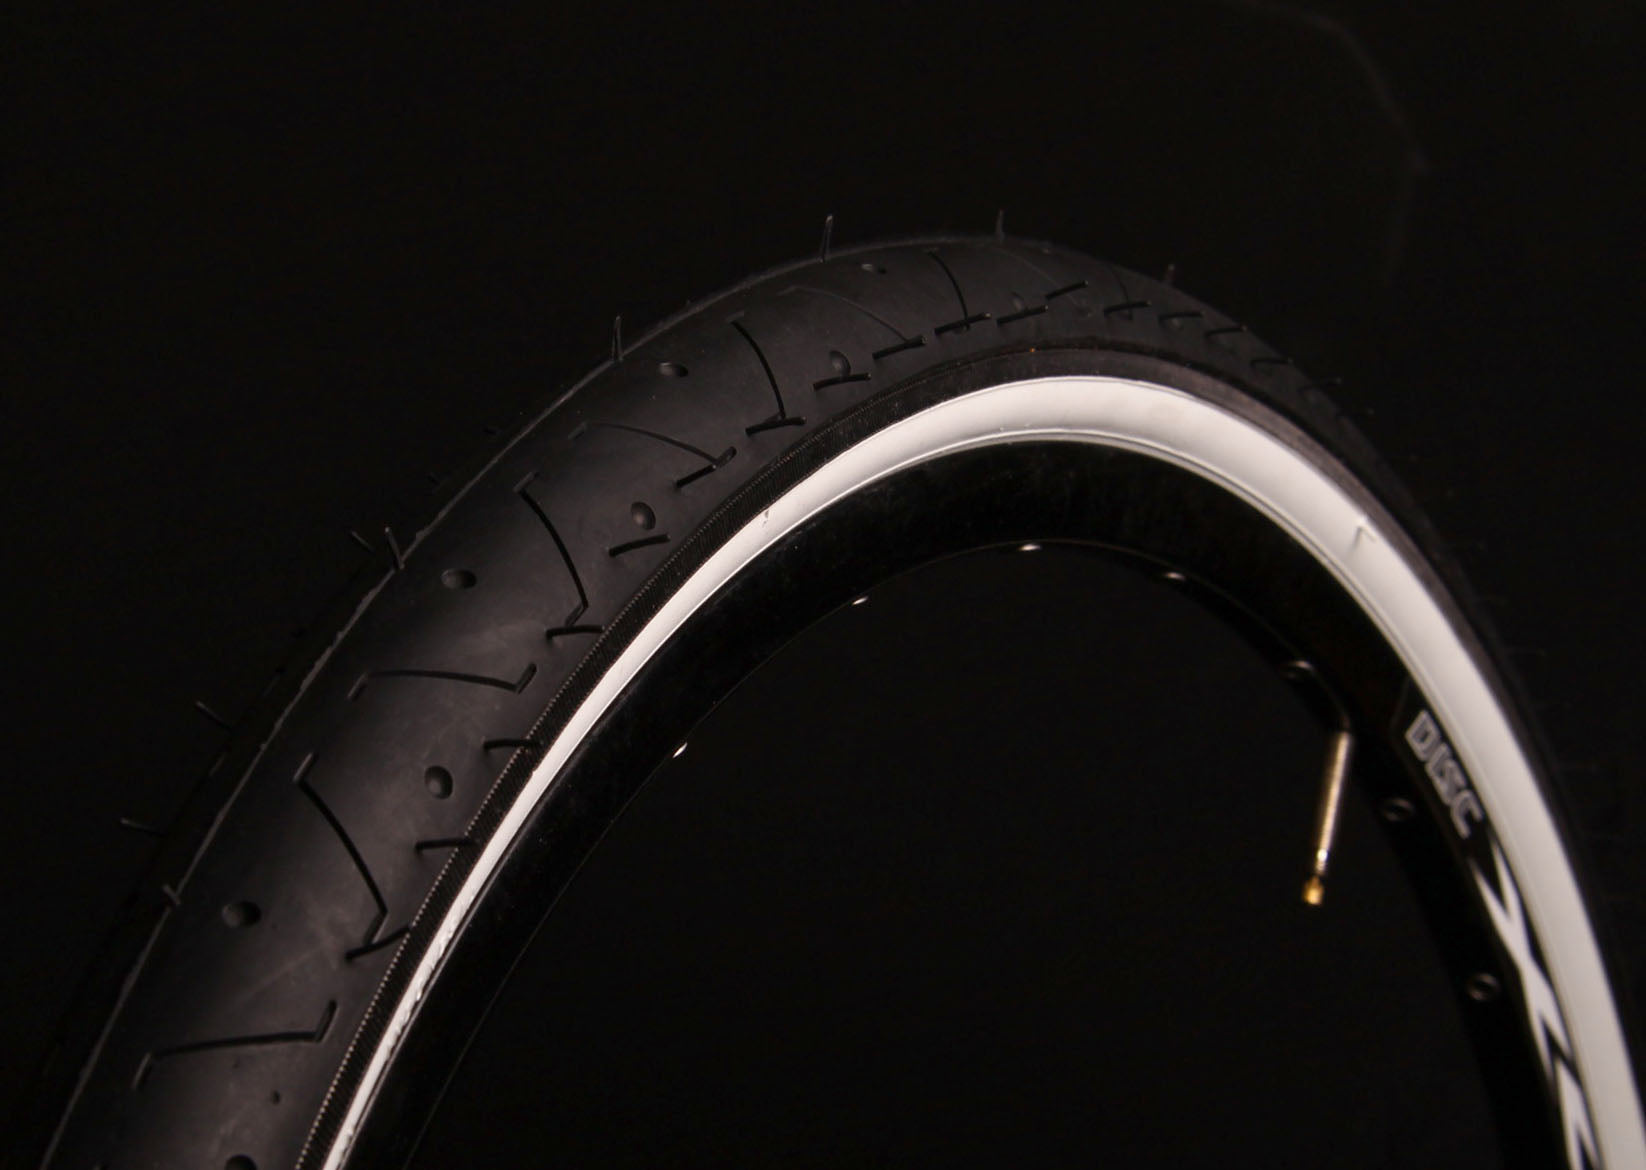 LS077 BLACK WHITEWALL BICYCLE SLICK TYRE TIRE 26 X 2.10